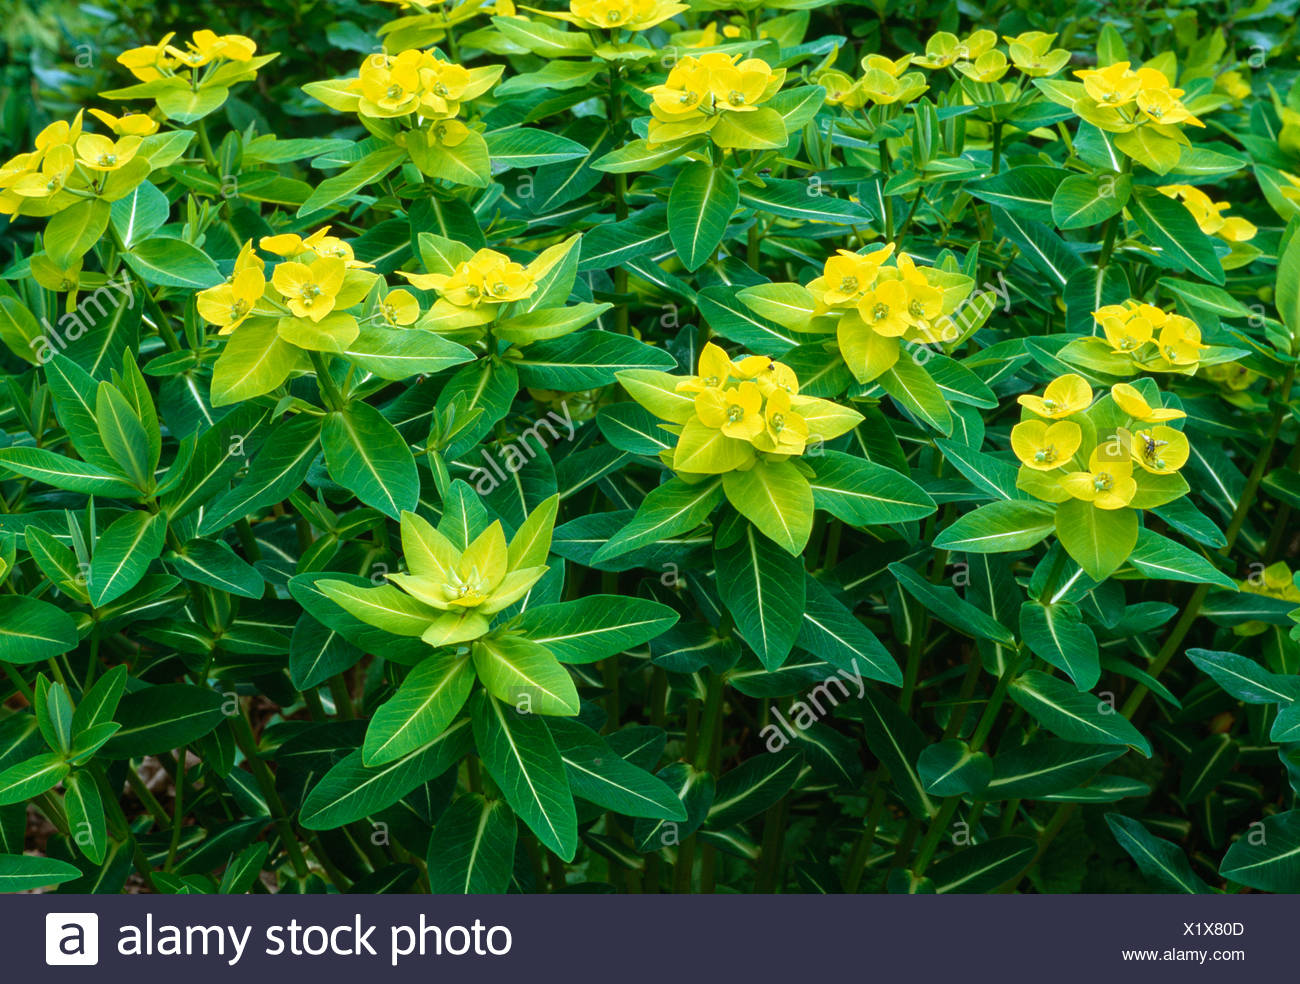 Close-up of euphorbia 'Wallichii' - Stock Image